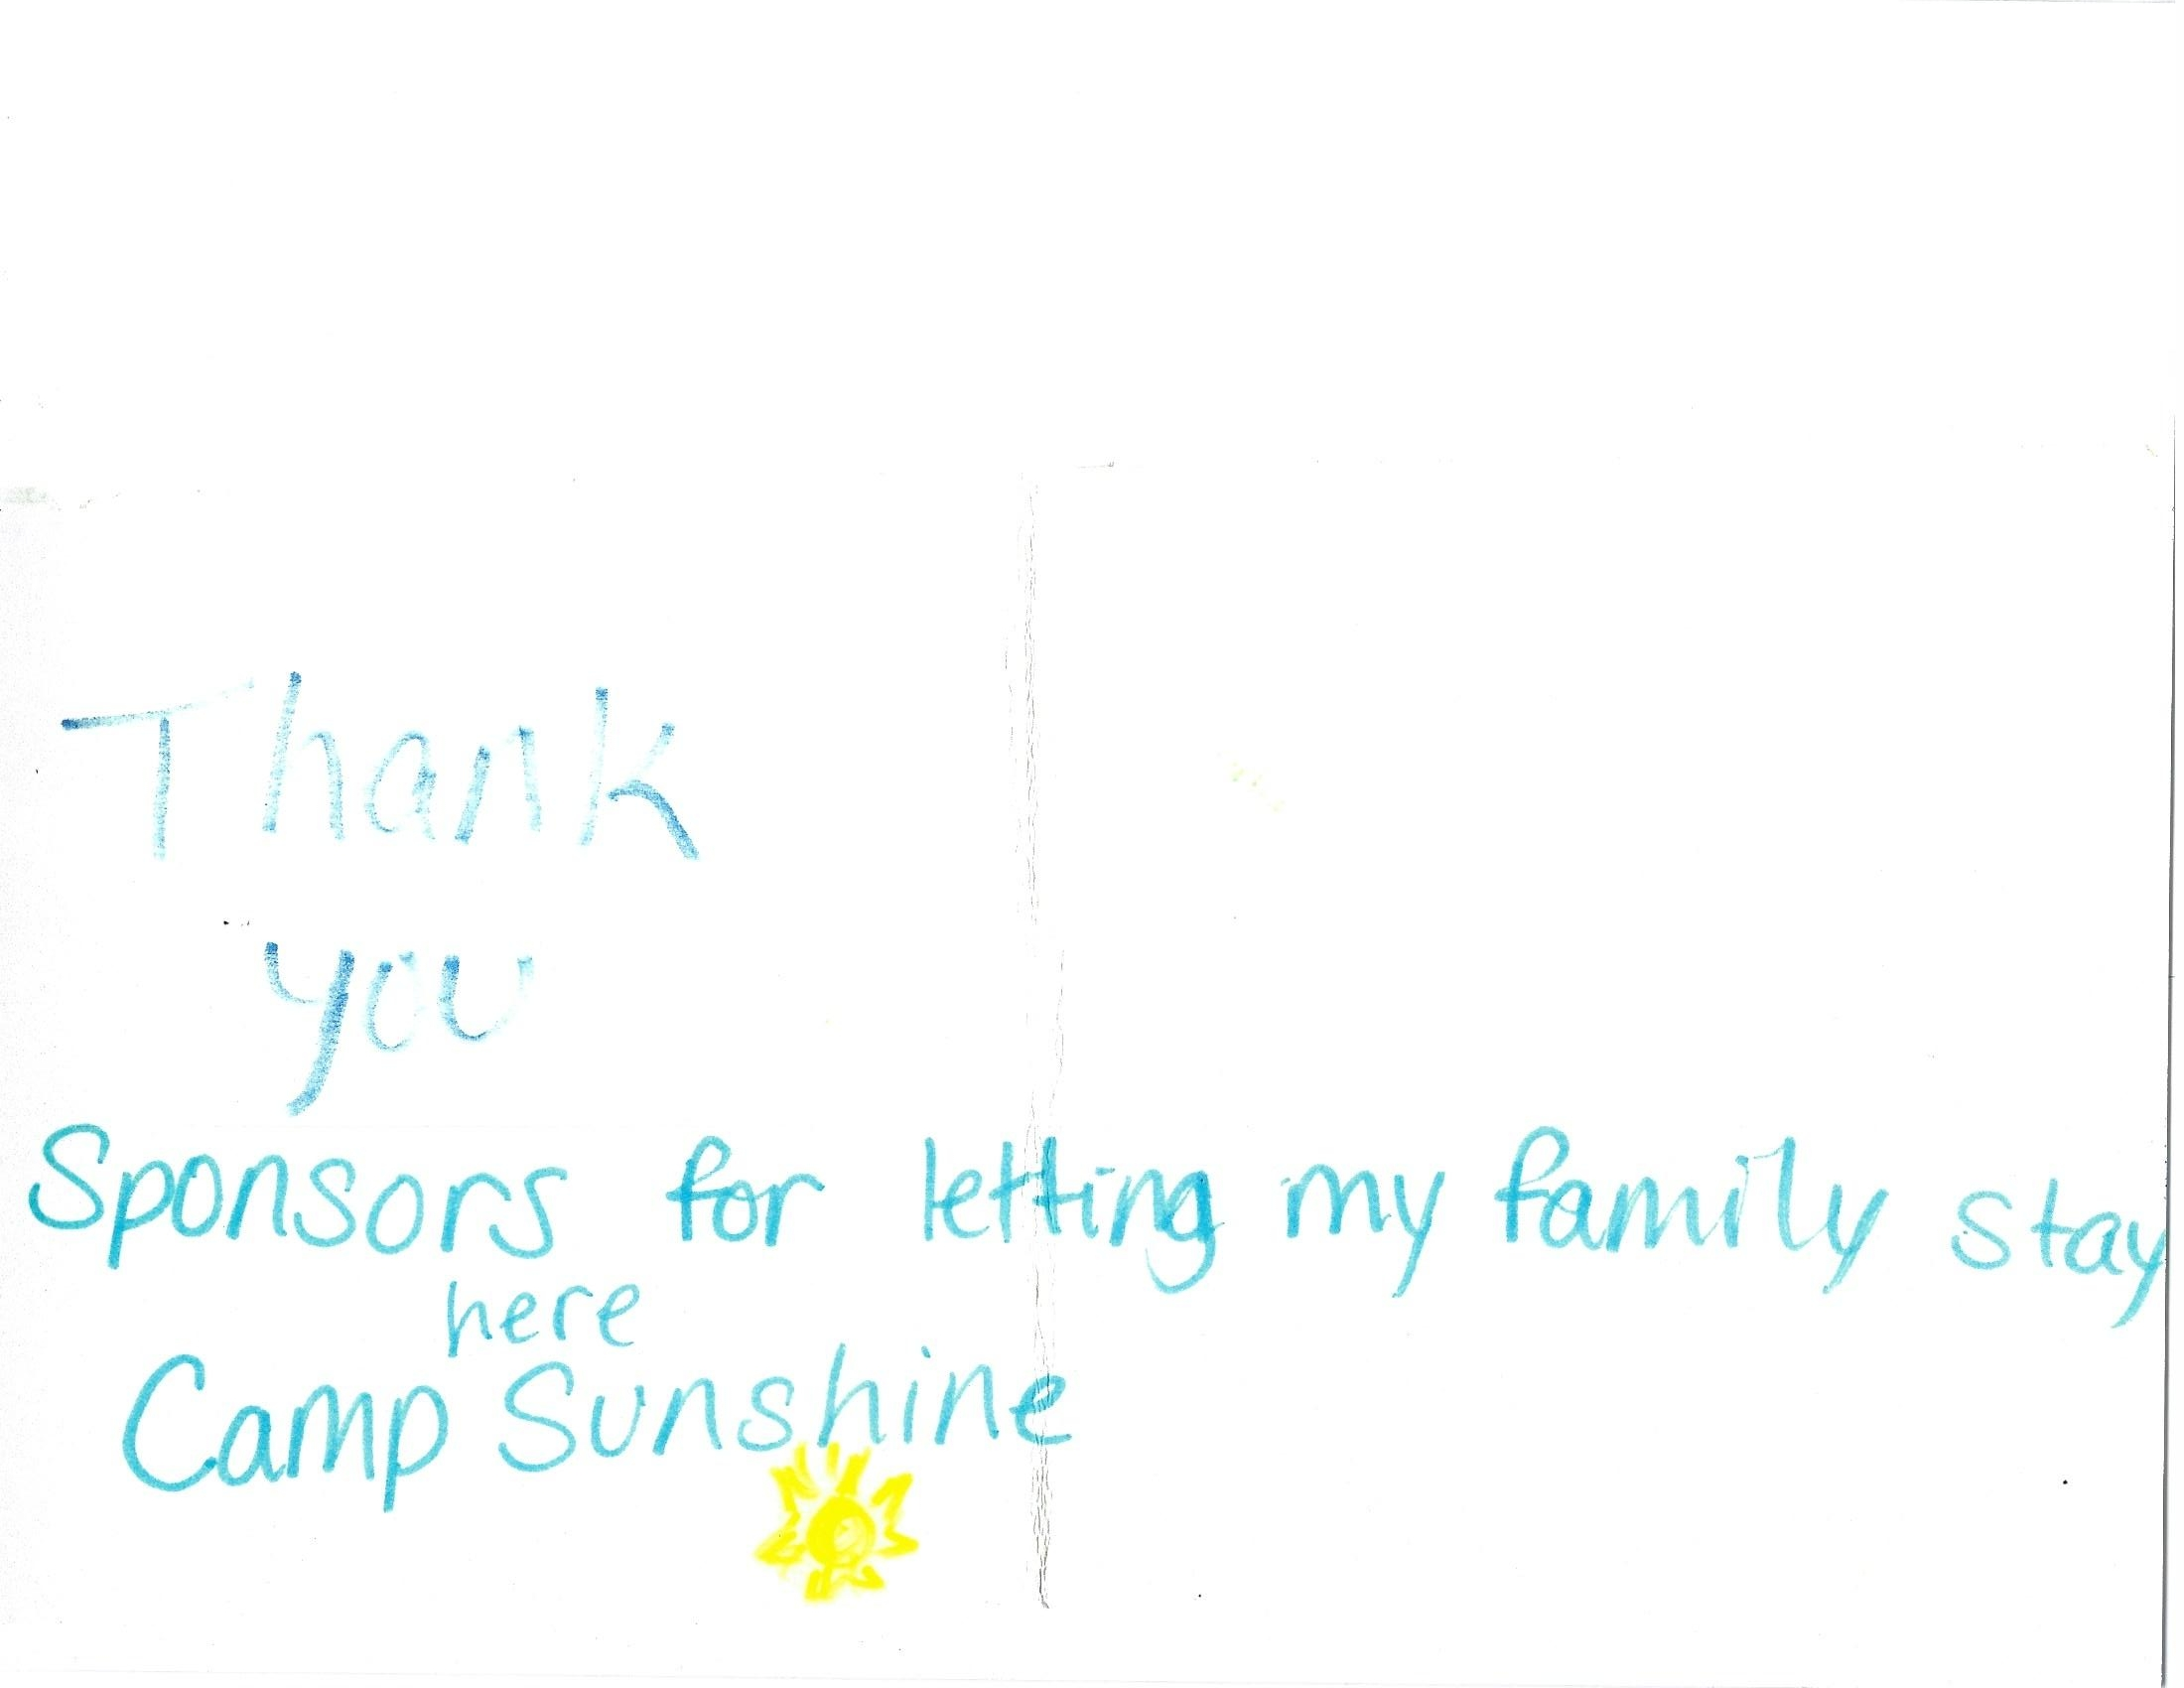 MJD TY note from Camp Sun shine guest_0003.jpg